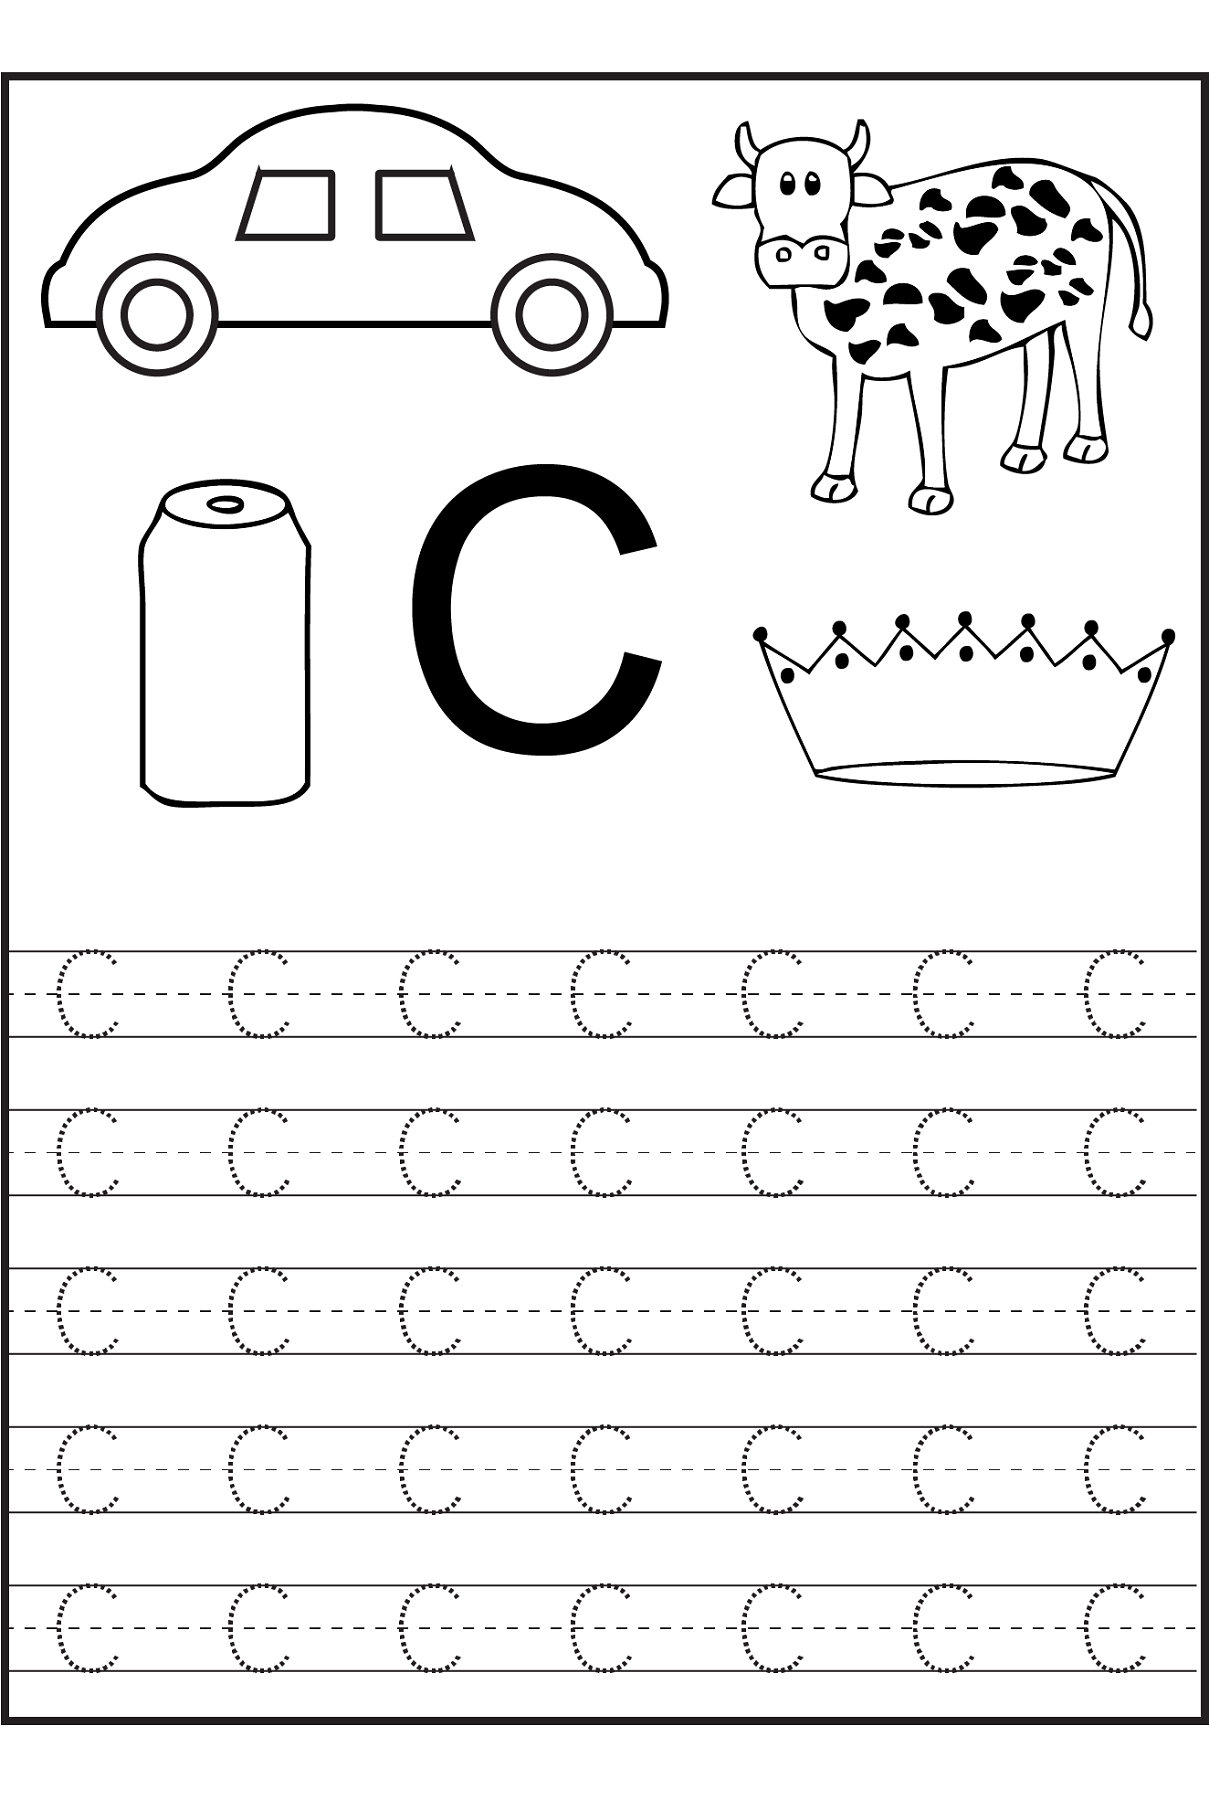 trace the letter c worksheets alphabet and numbers learning kindergarten worksheets. Black Bedroom Furniture Sets. Home Design Ideas